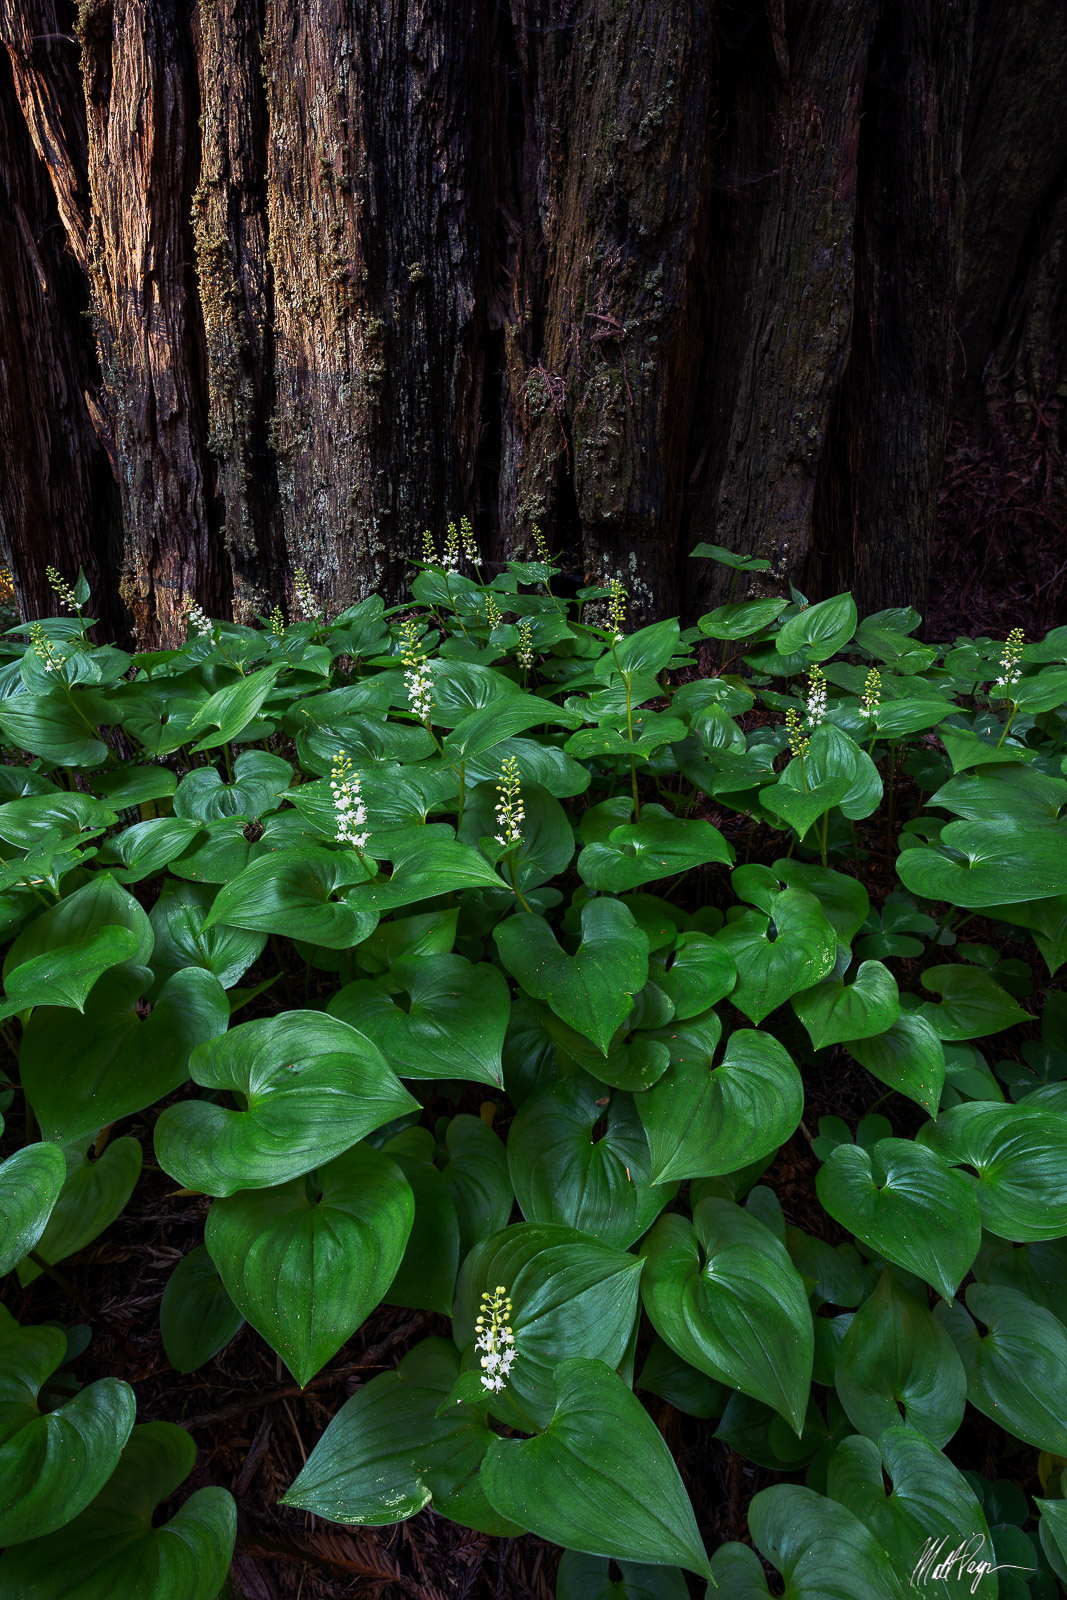 The Western Lily of the Valley is a wonderful perennial plant found on the forest floor of the Redwoods forest of California...